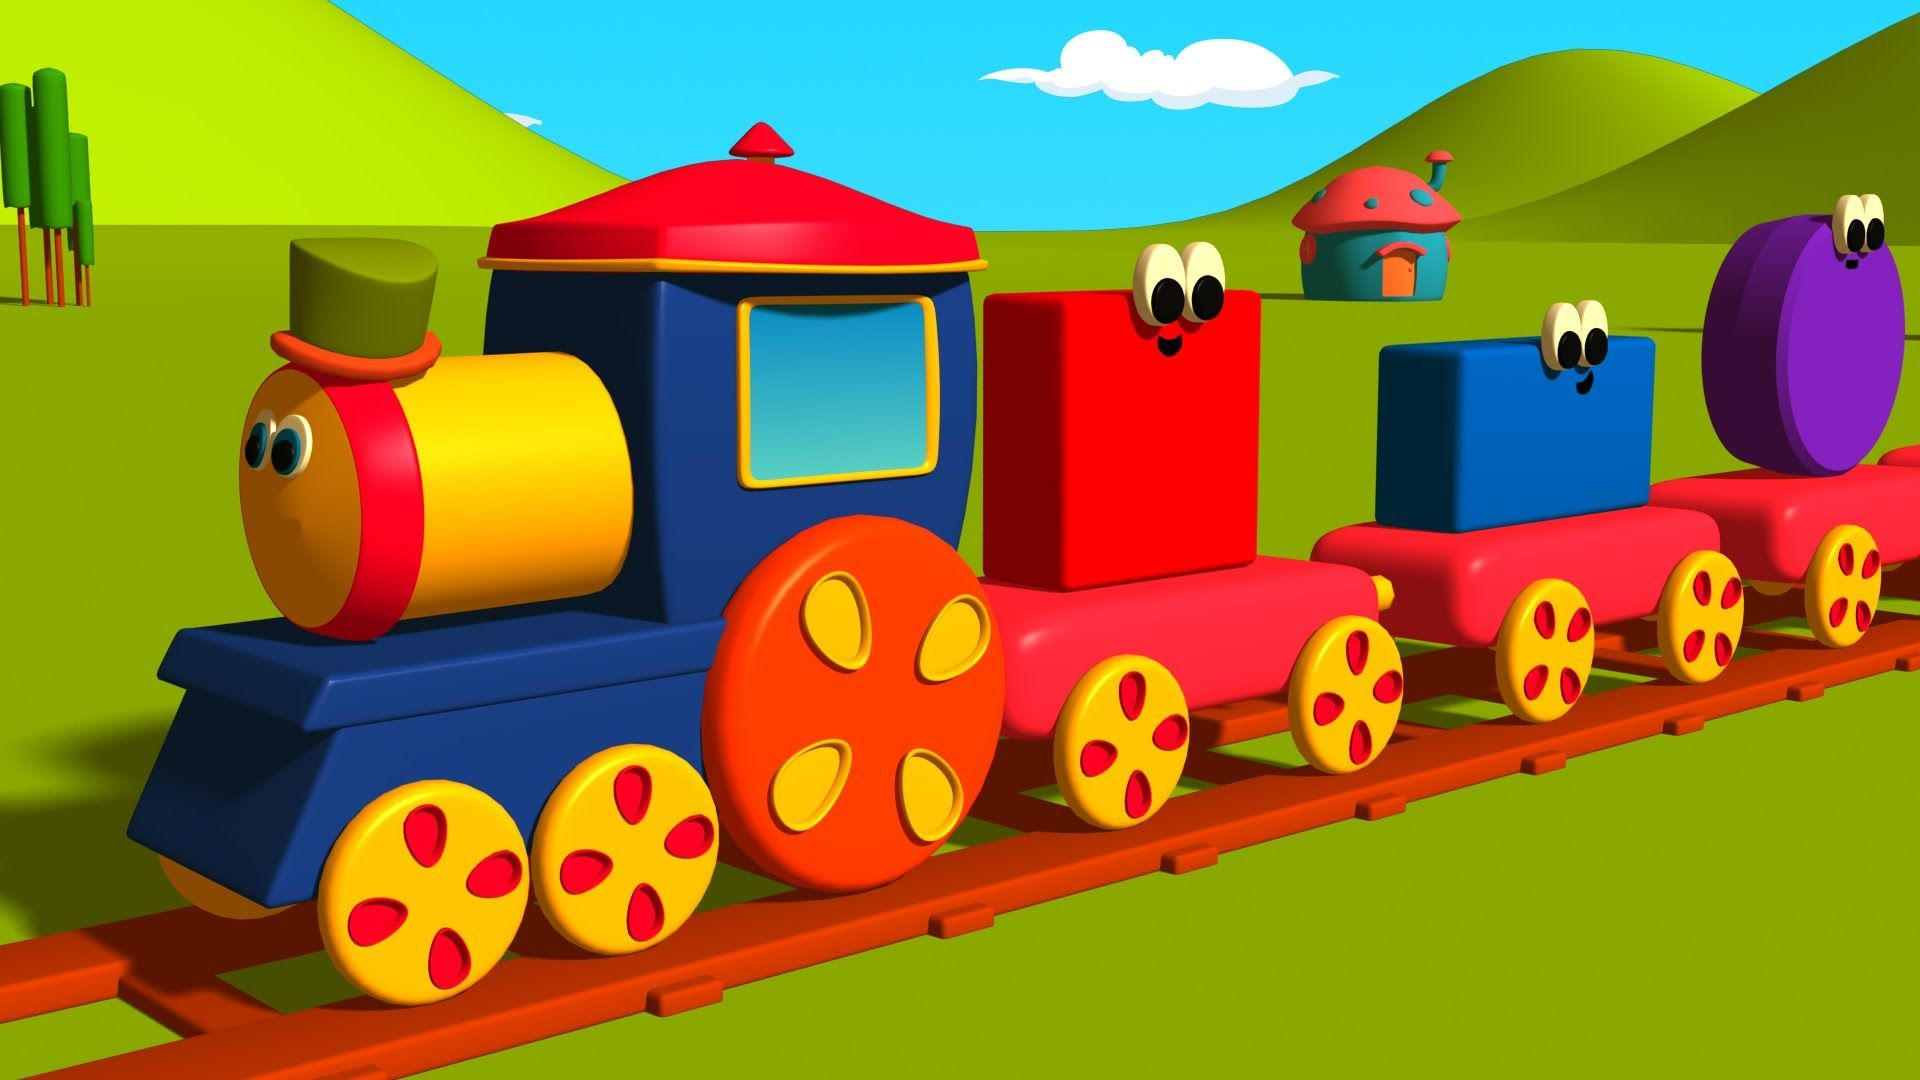 Bob The Train Has Been Built Using All These Shapes